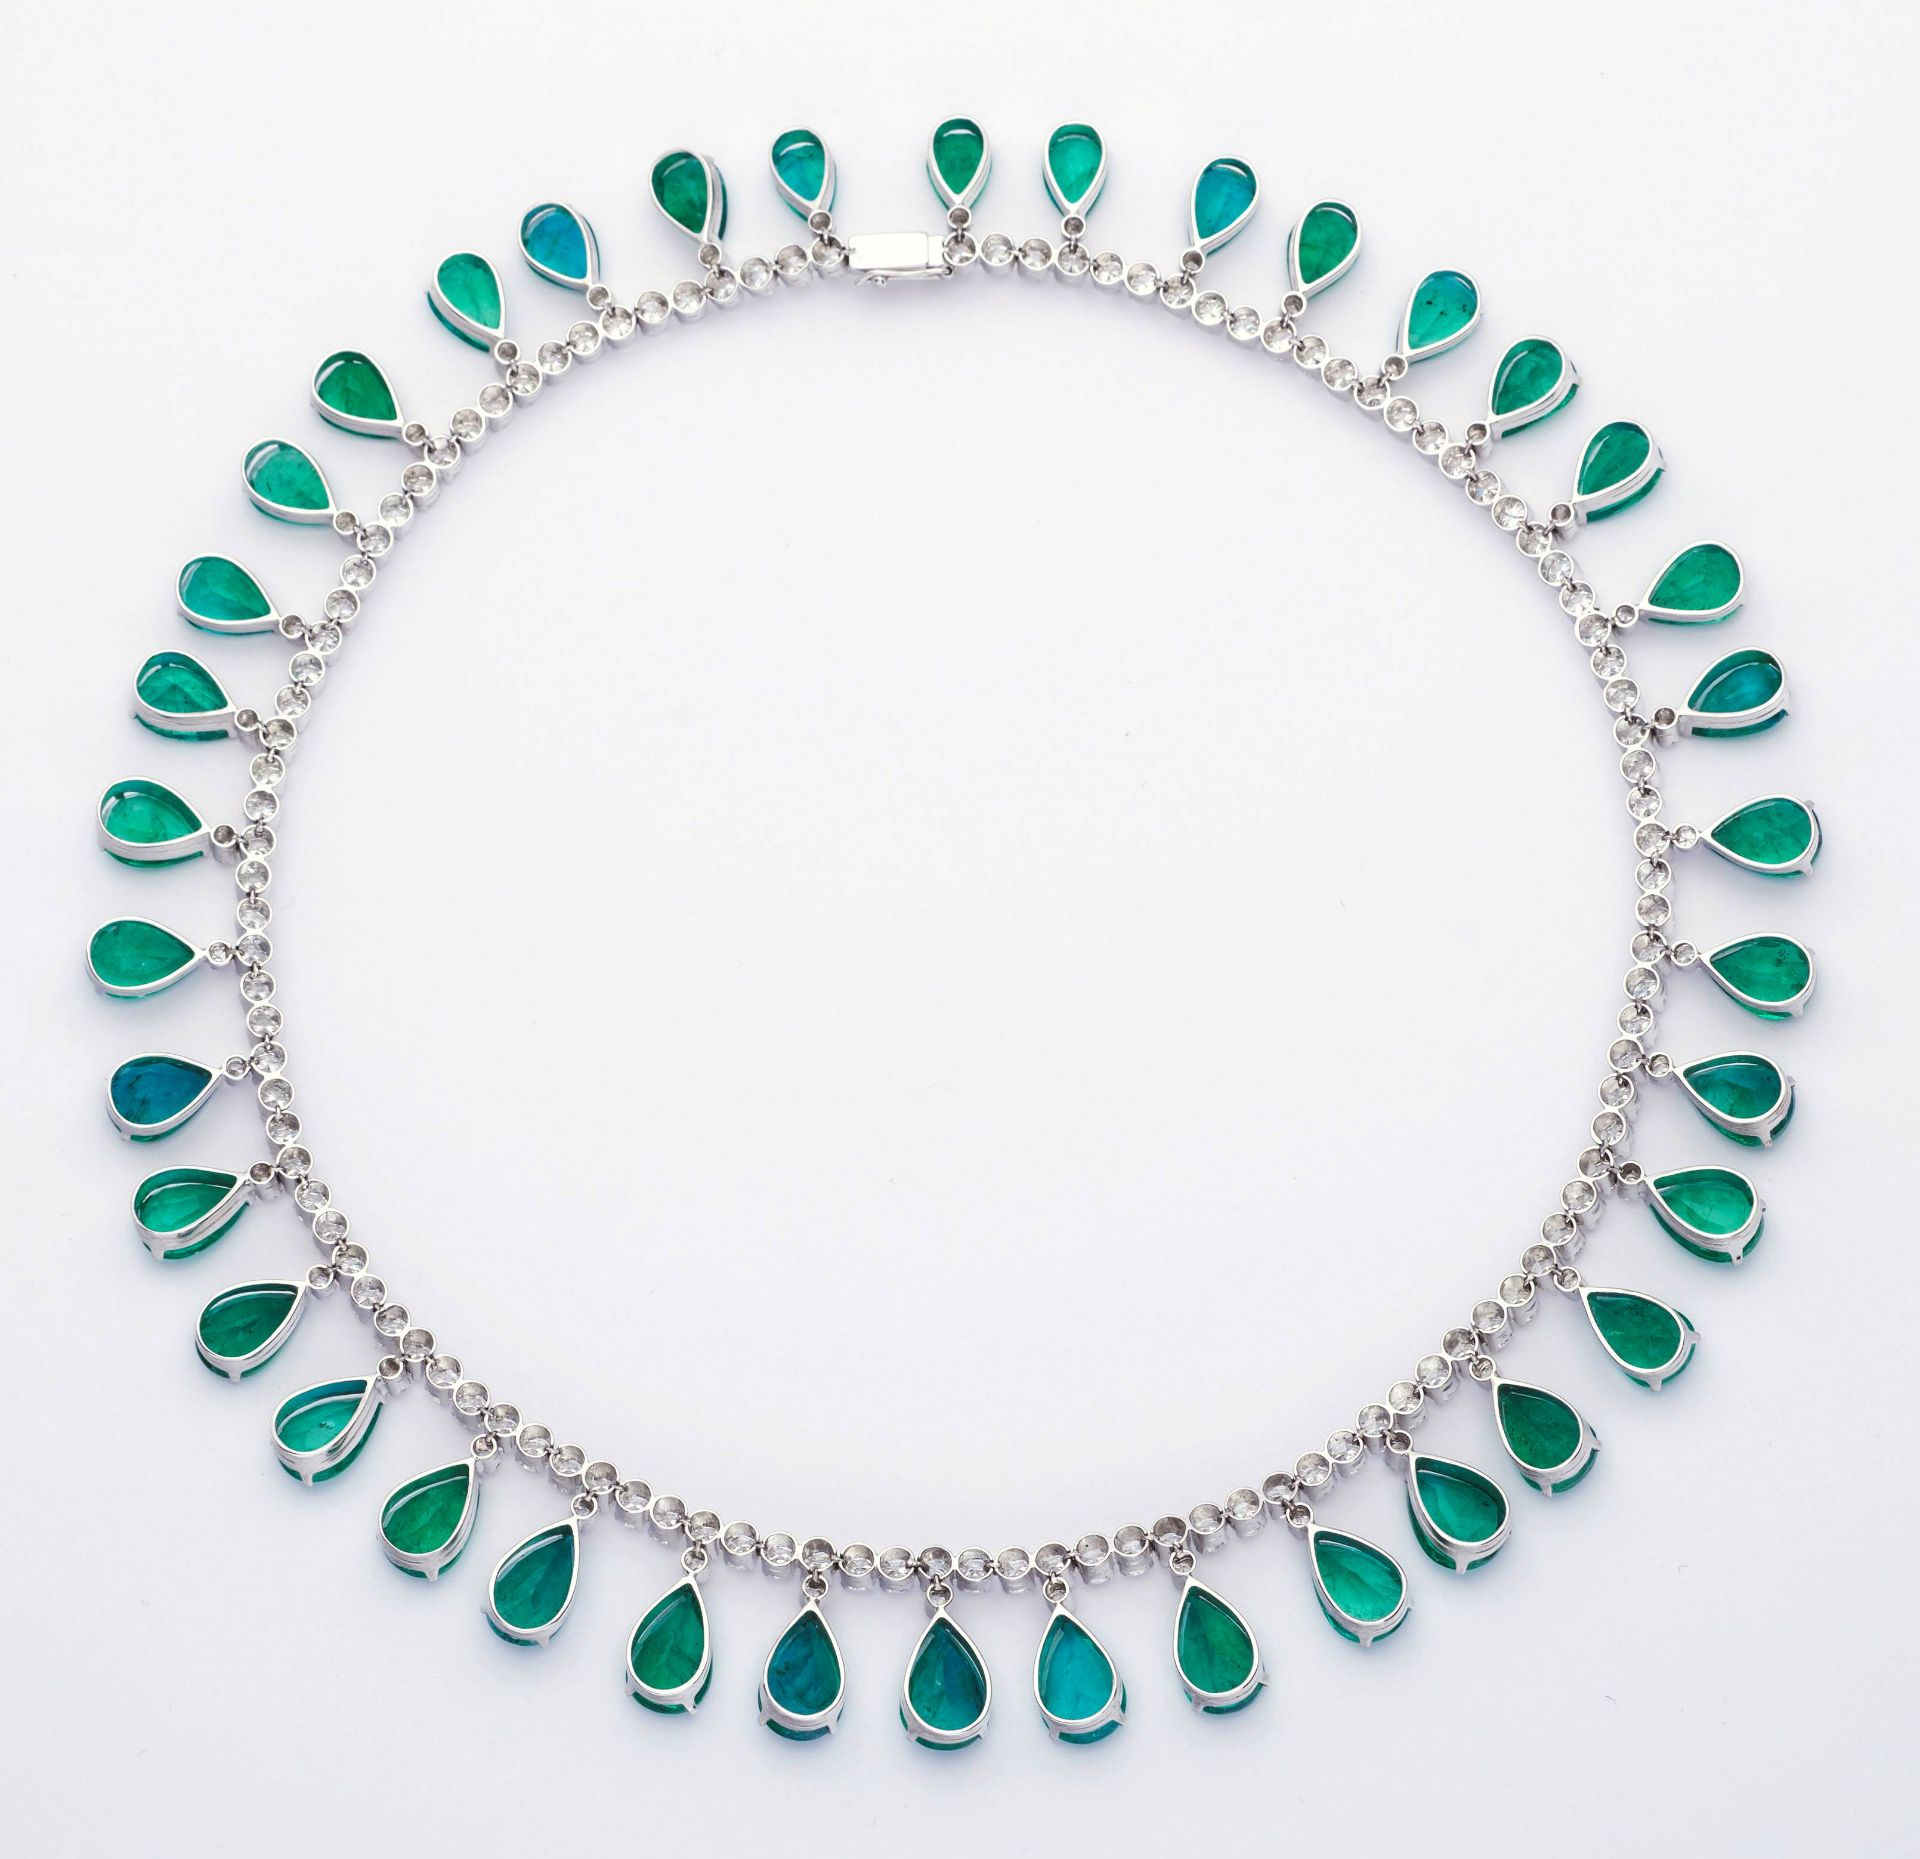 EMERALD AND DIAMOND NECKLACE. - Image 3 of 3